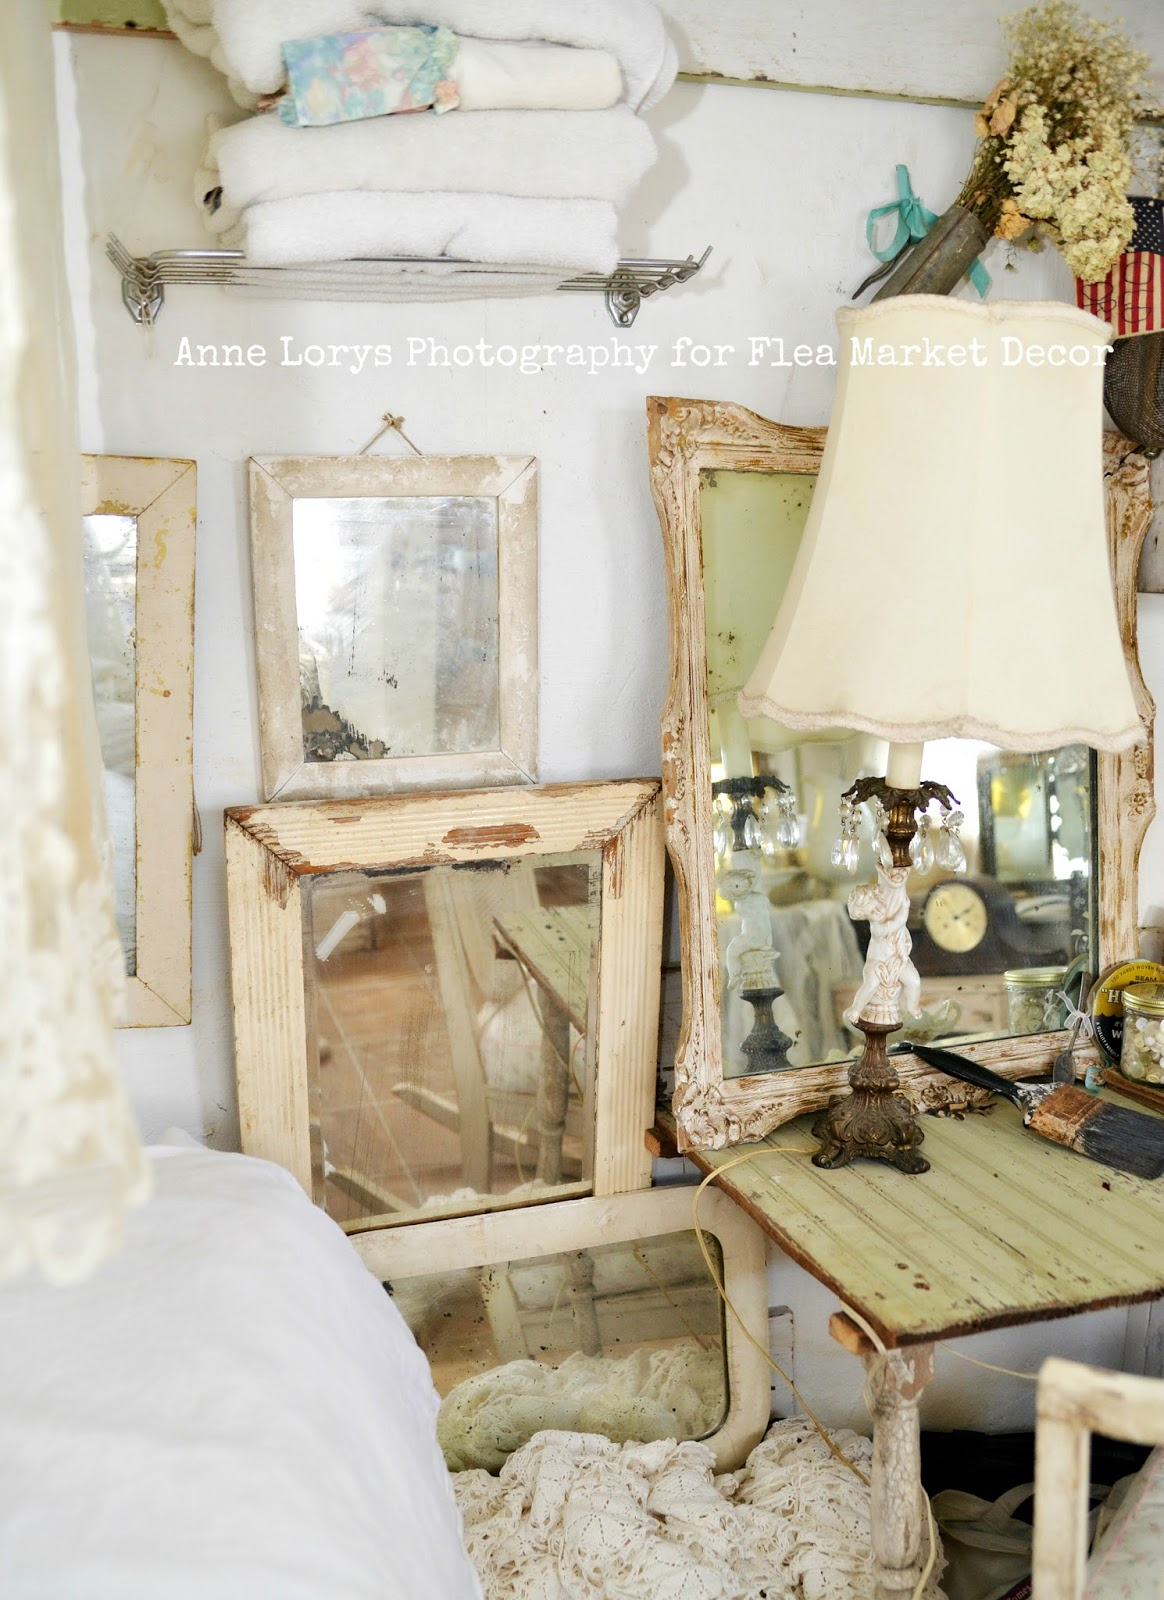 Fiona and Twig Glamping Published in Flea Market Decor